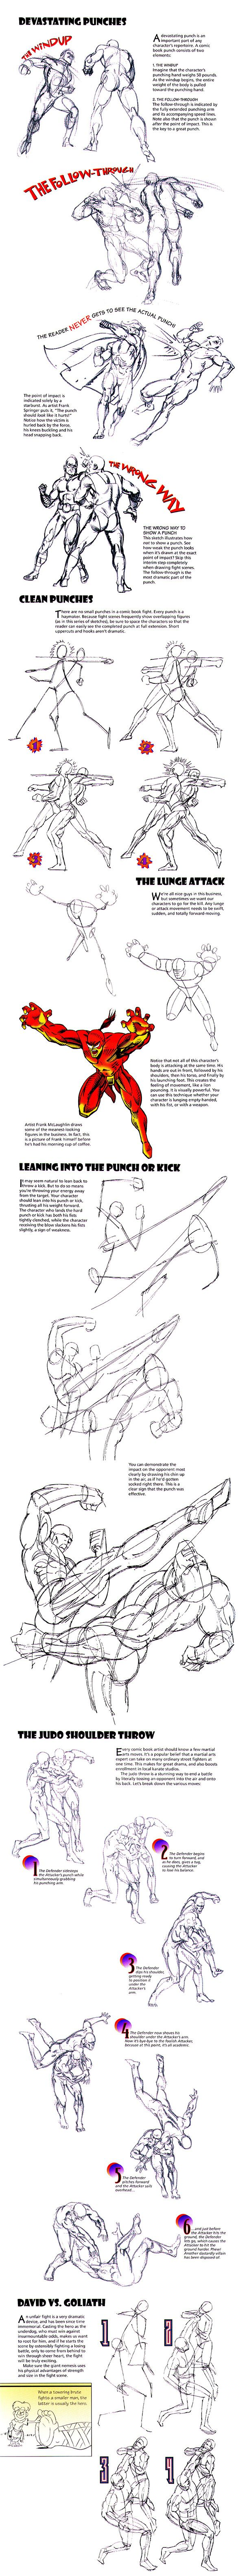 how to draw the human body tutorial the fight scene for comic this is helpful as it shows how you can draw different characters in action moves and how to use lines and shapes to make movement